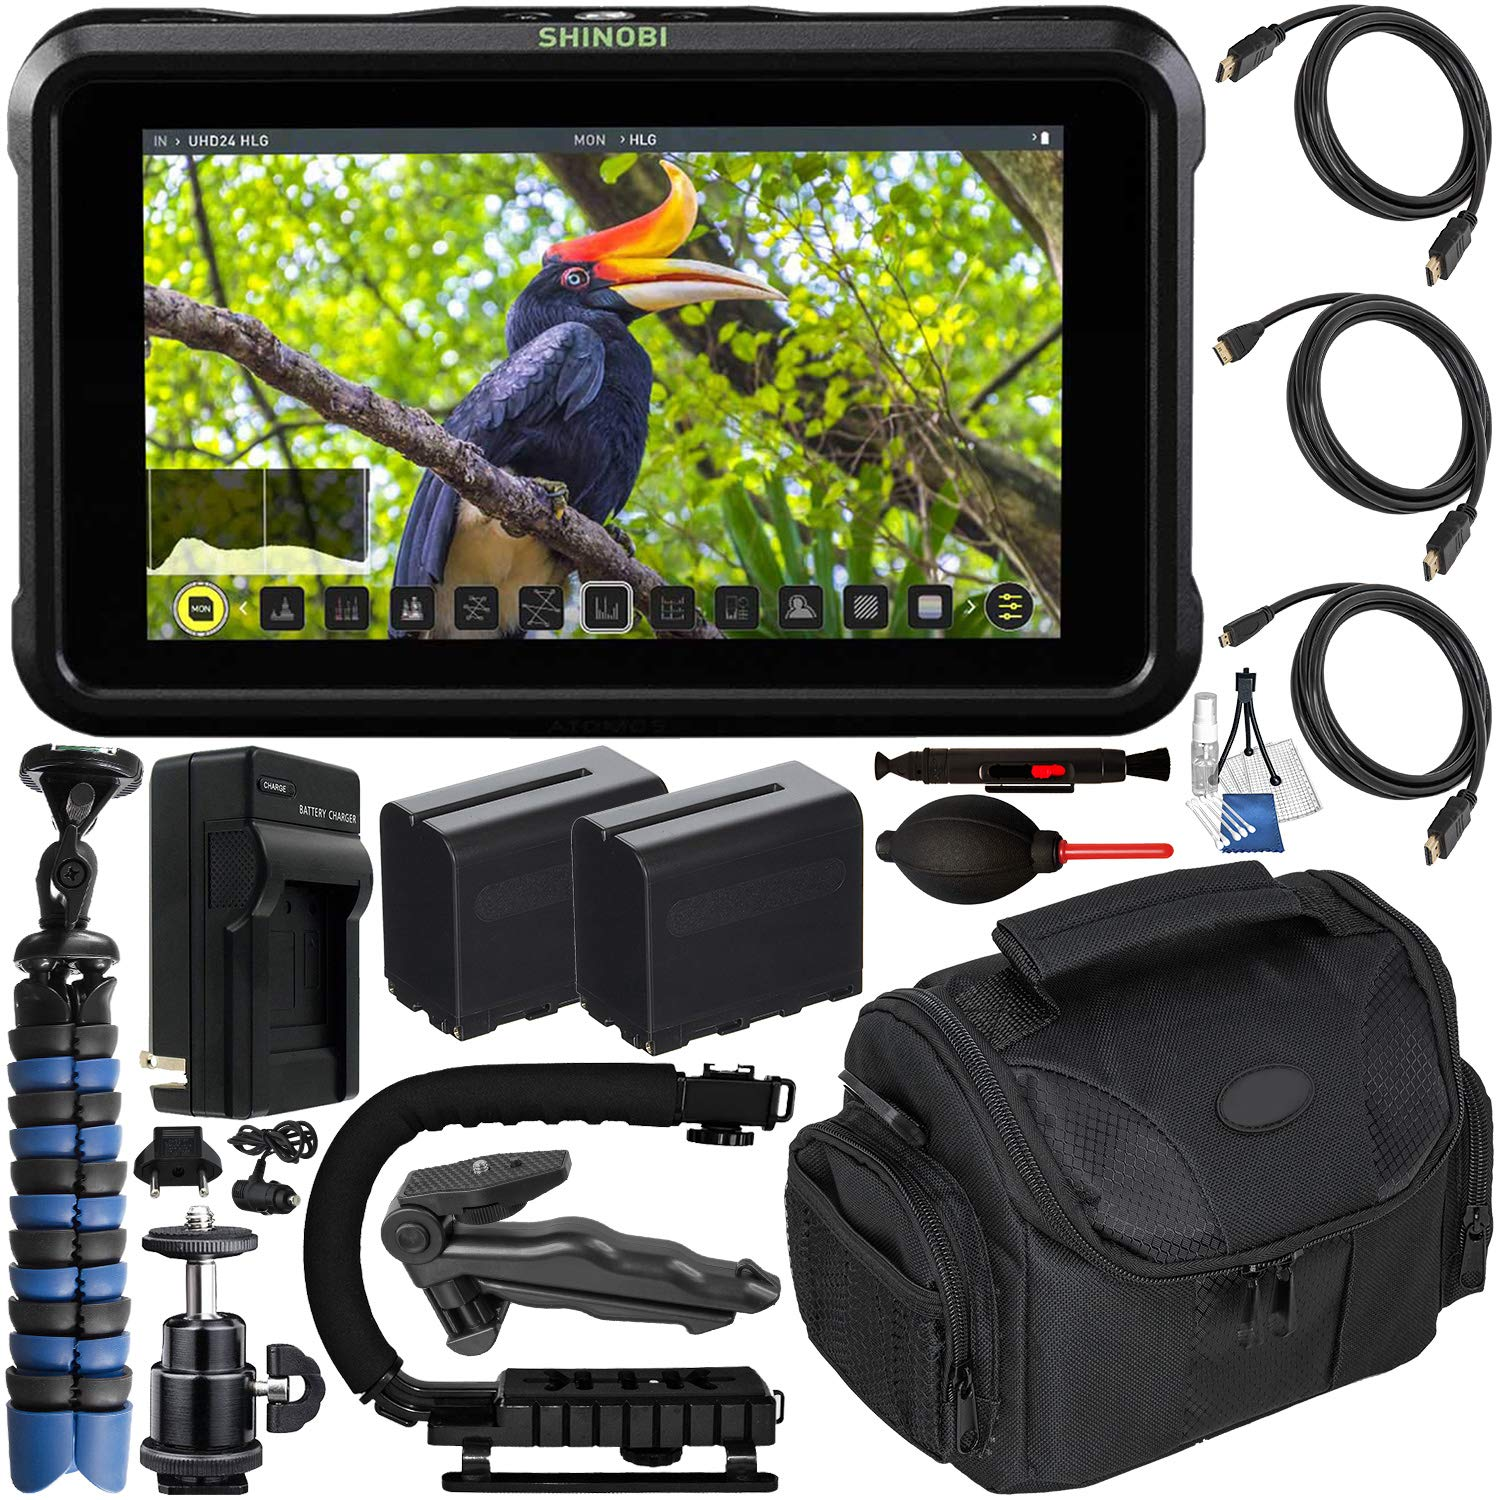 Atomos Shinobi 5.2'' 4K HDMI Monitor with Deluxe Accessory Bundle - Includes: 2X Extended Life NP-F975 Batteries with Charger, Standard, Mini & Micro HDMI Cables, Action Grip Stabilizer & Much More by Atomos